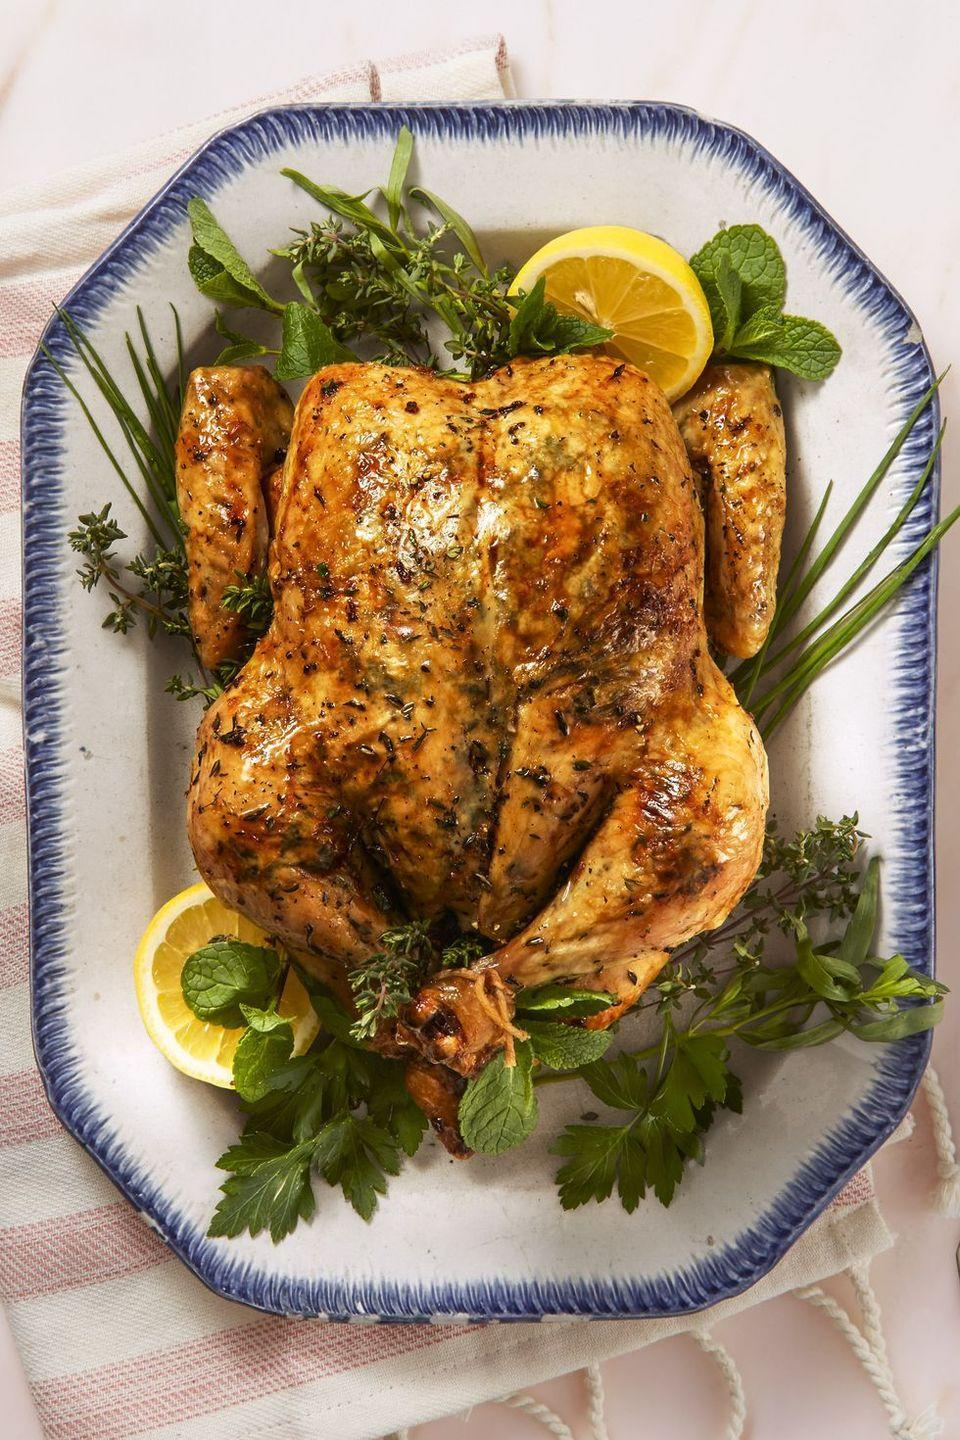 """<p>A classic roast chicken recipe gets an upgrade with lemon, garlic and thyme.</p><p><em><a href=""""https://www.goodhousekeeping.com/food-recipes/healthy/a43668/lemony-herb-roast-chicken-recipe/"""" rel=""""nofollow noopener"""" target=""""_blank"""" data-ylk=""""slk:Get the recipe for Lemony Herb Roast Chicken »"""" class=""""link rapid-noclick-resp"""">Get the recipe for Lemony Herb Roast Chicken »</a></em></p>"""